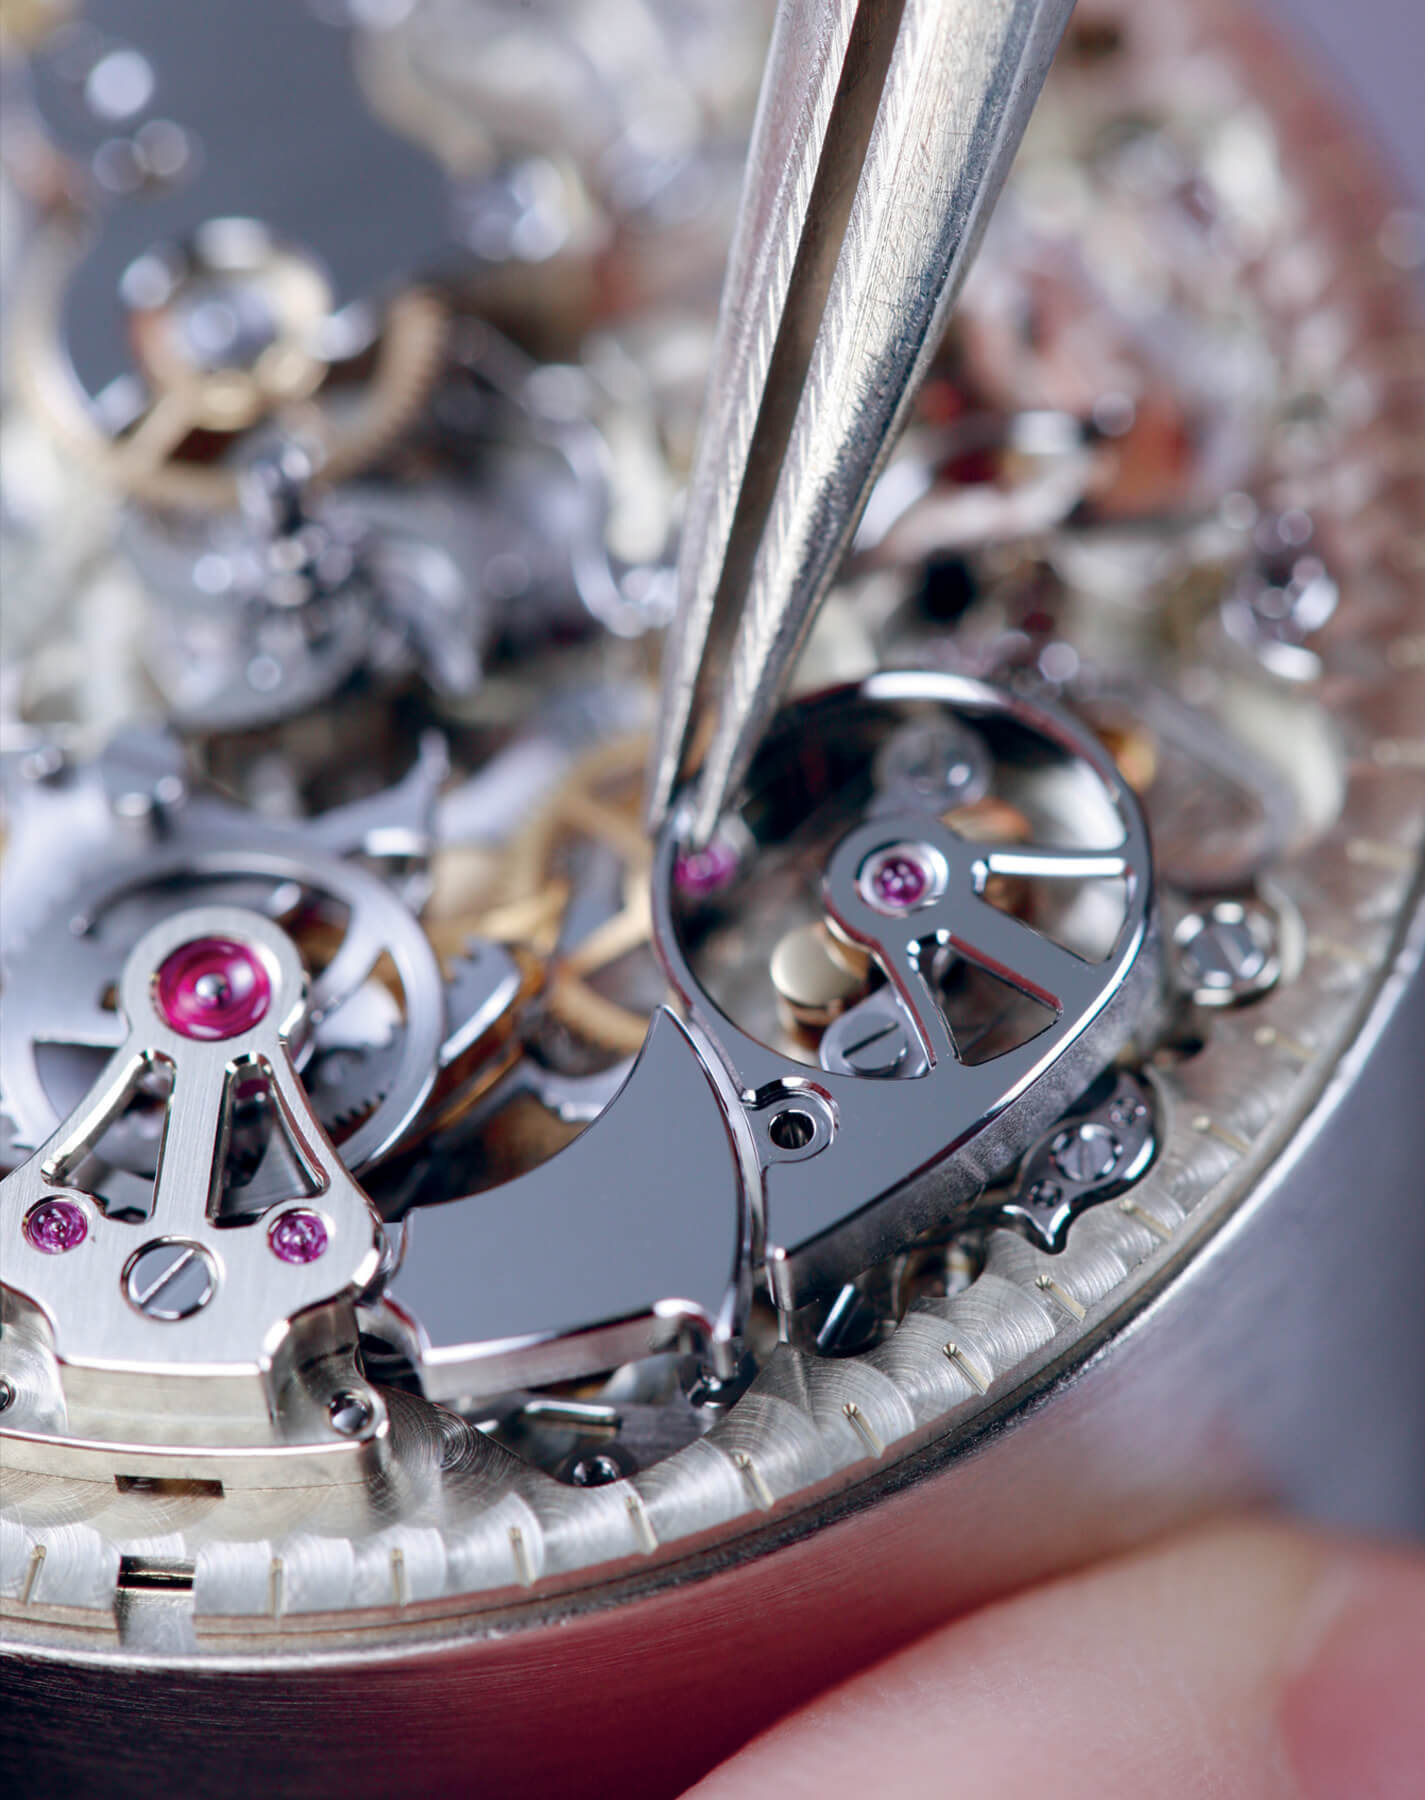 close-up view of LUC full strike minute repeater mechanics